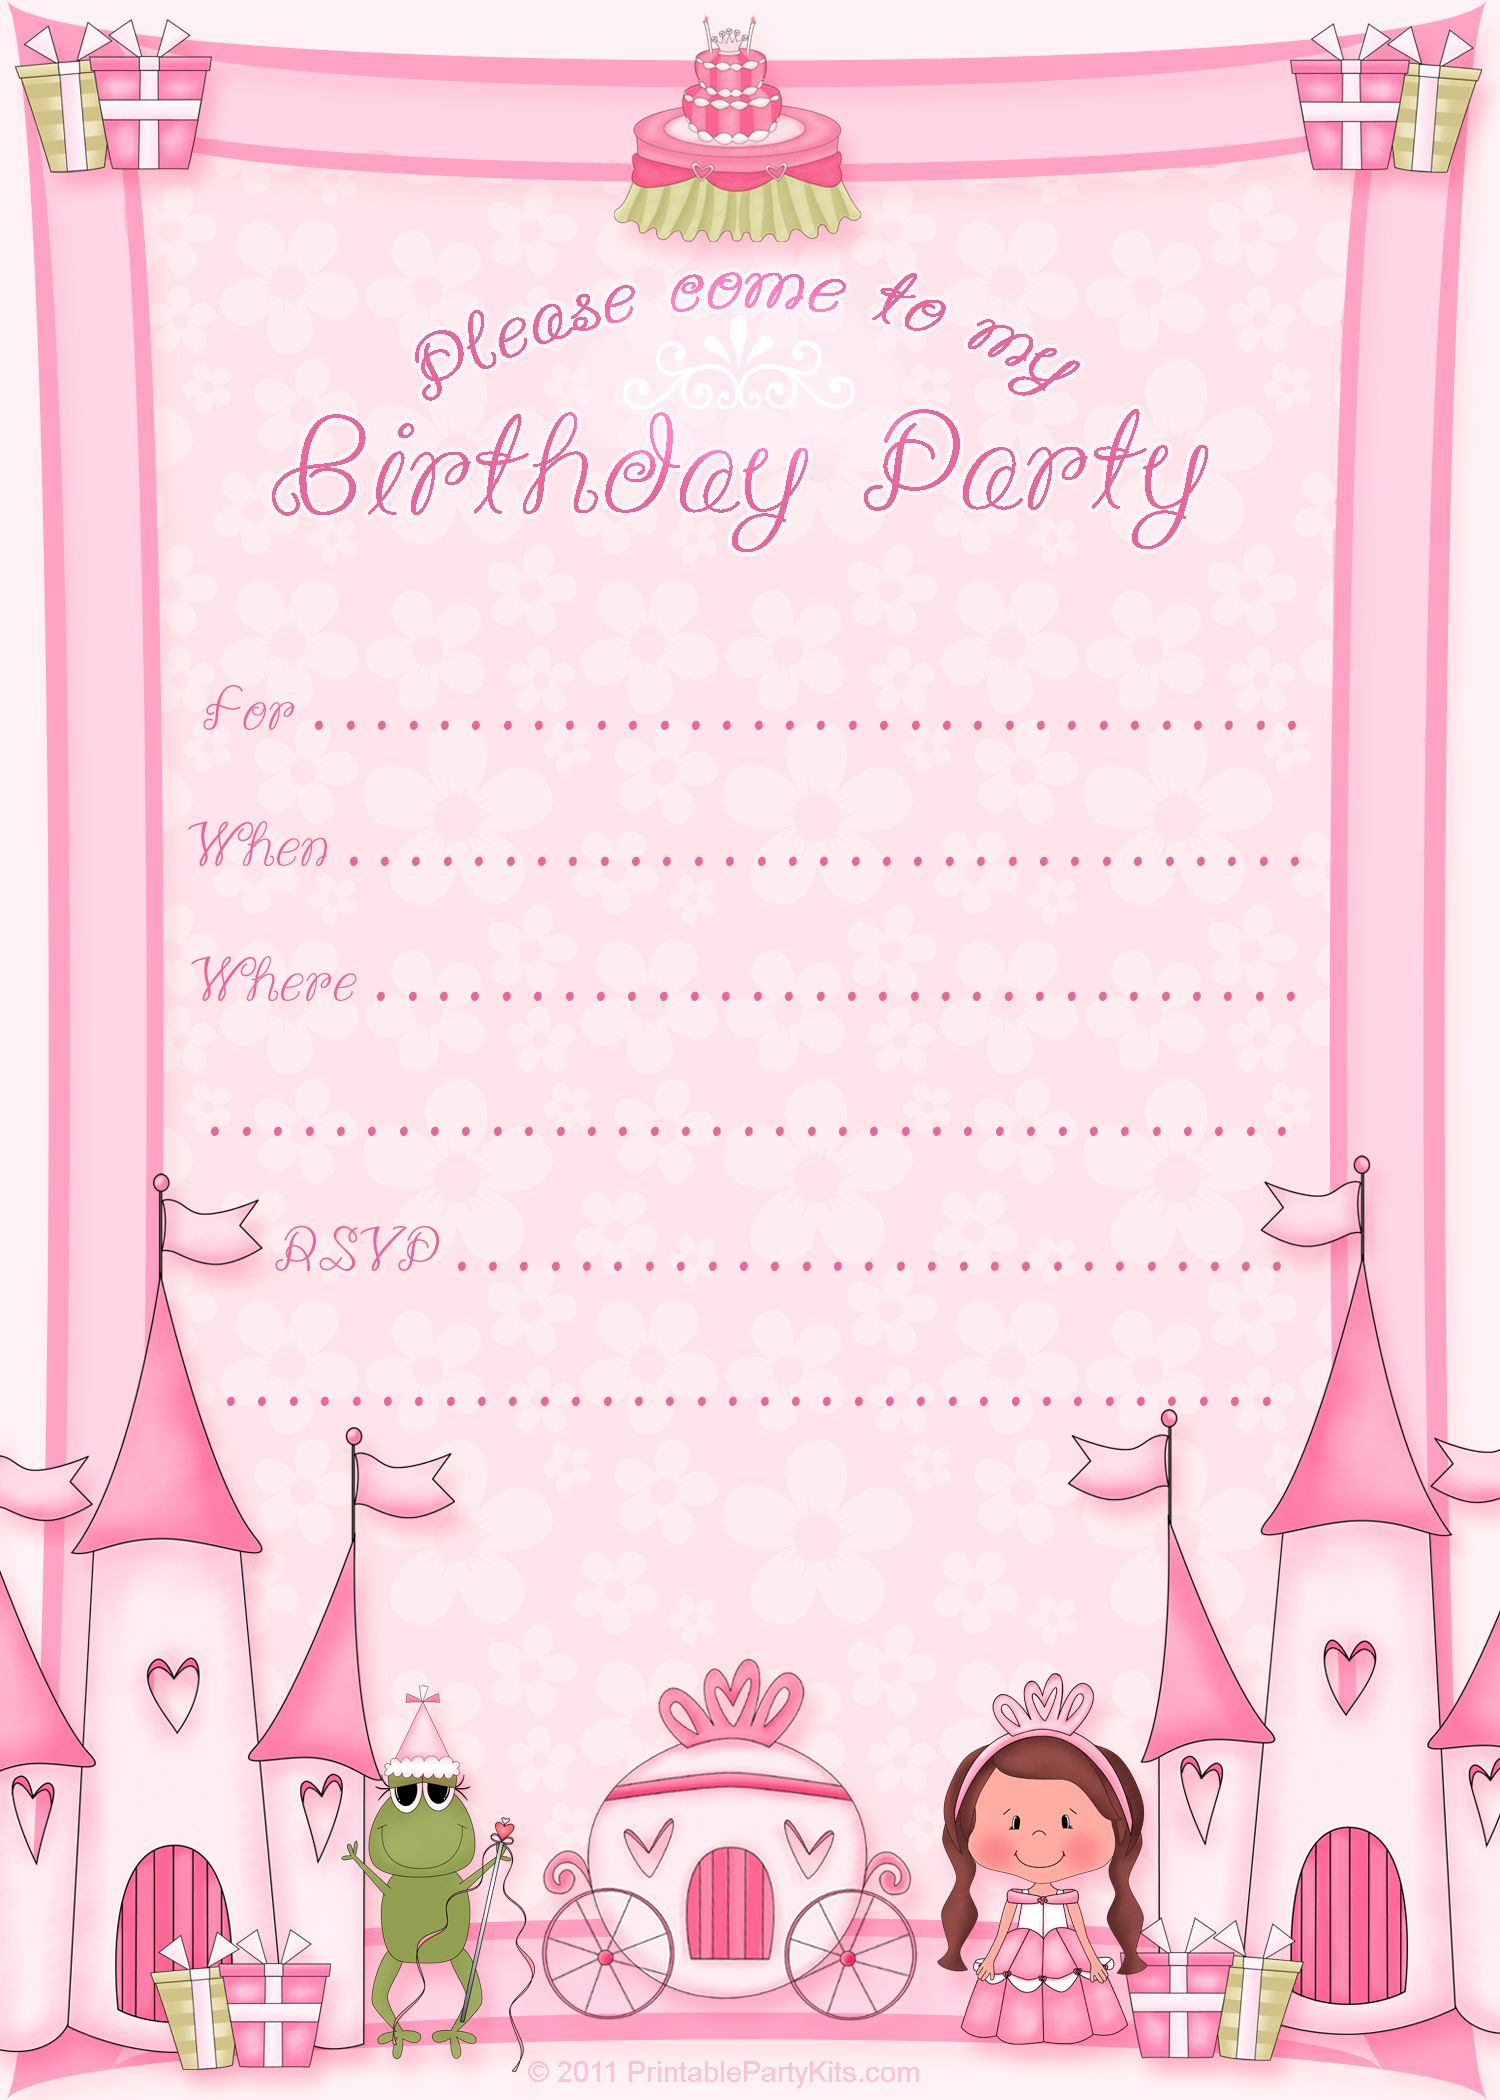 Free Printable Invitation Pinned For Kidfolio The Parenting Mobile - Princess birthday invitation templates free